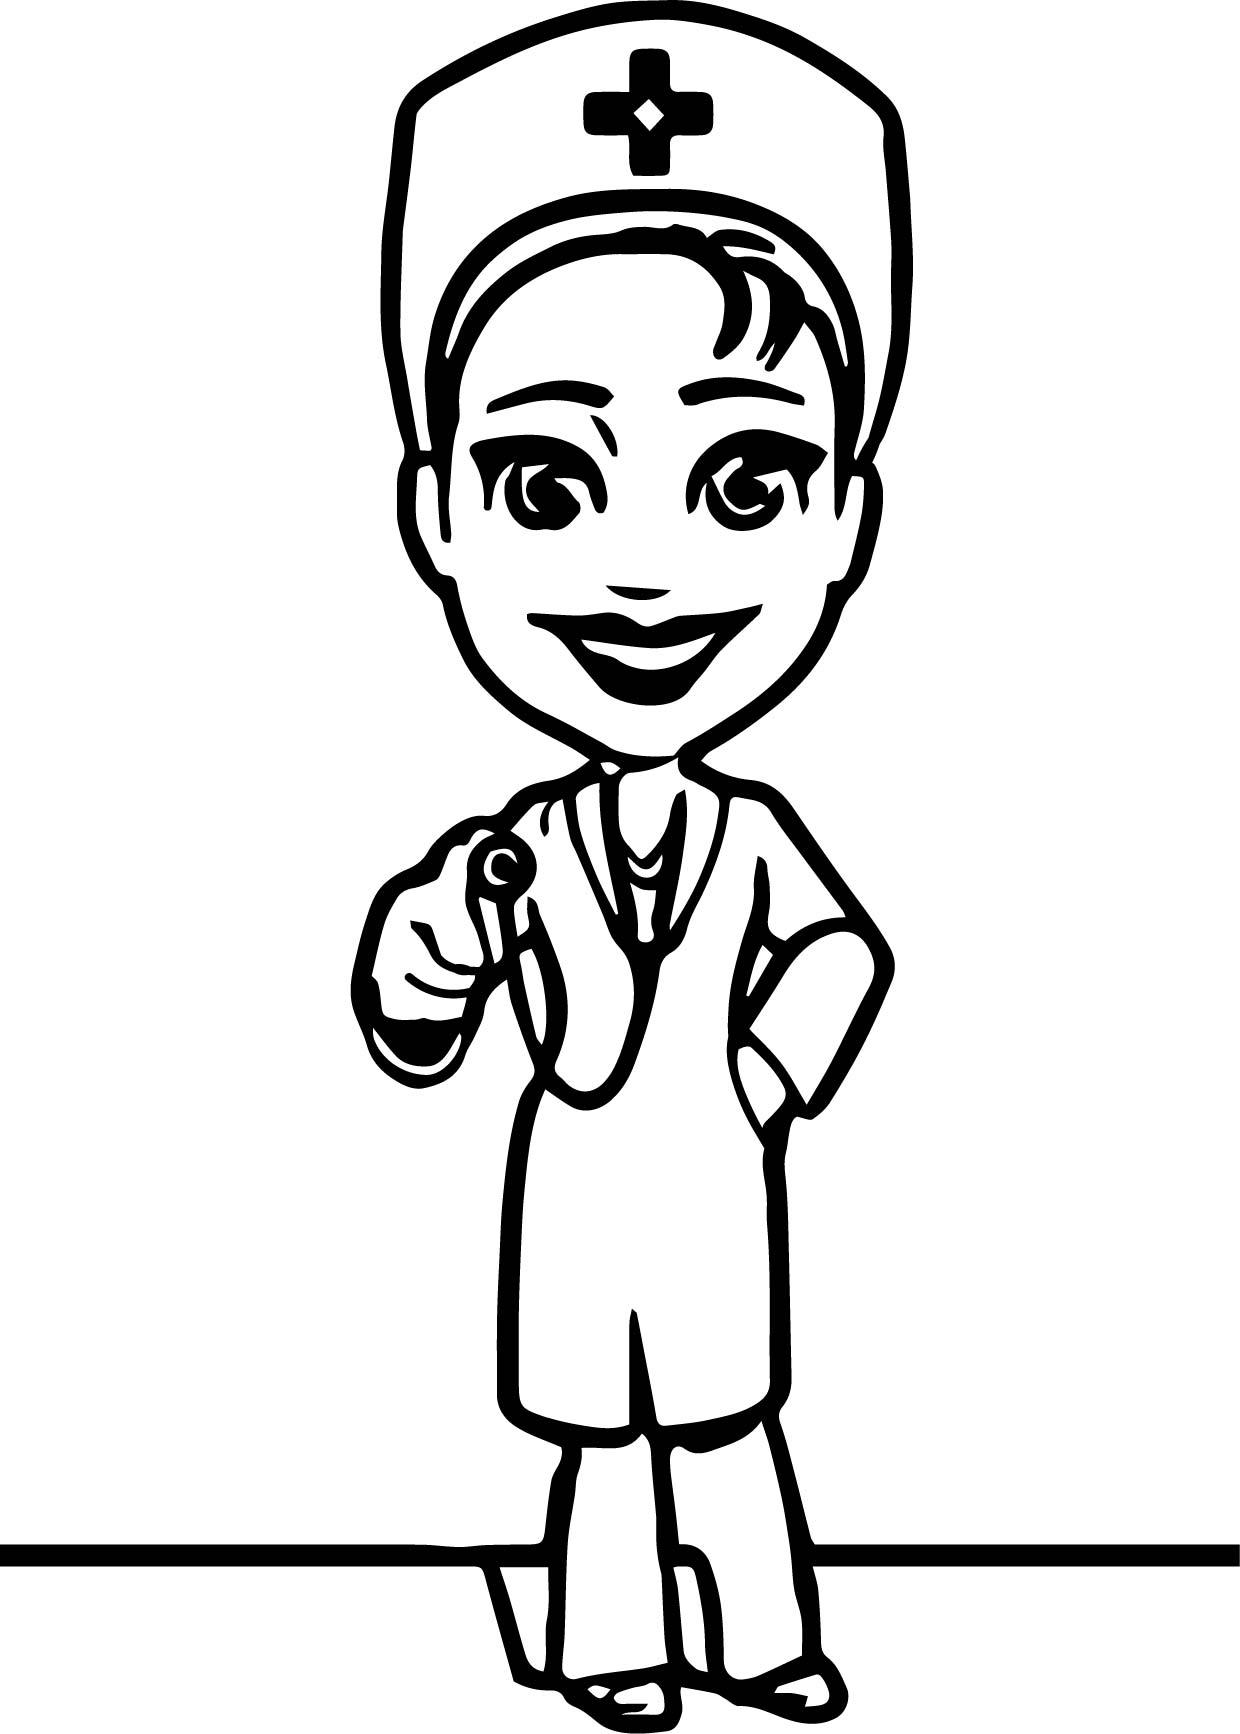 character coloring pages - female doctor character coloring page